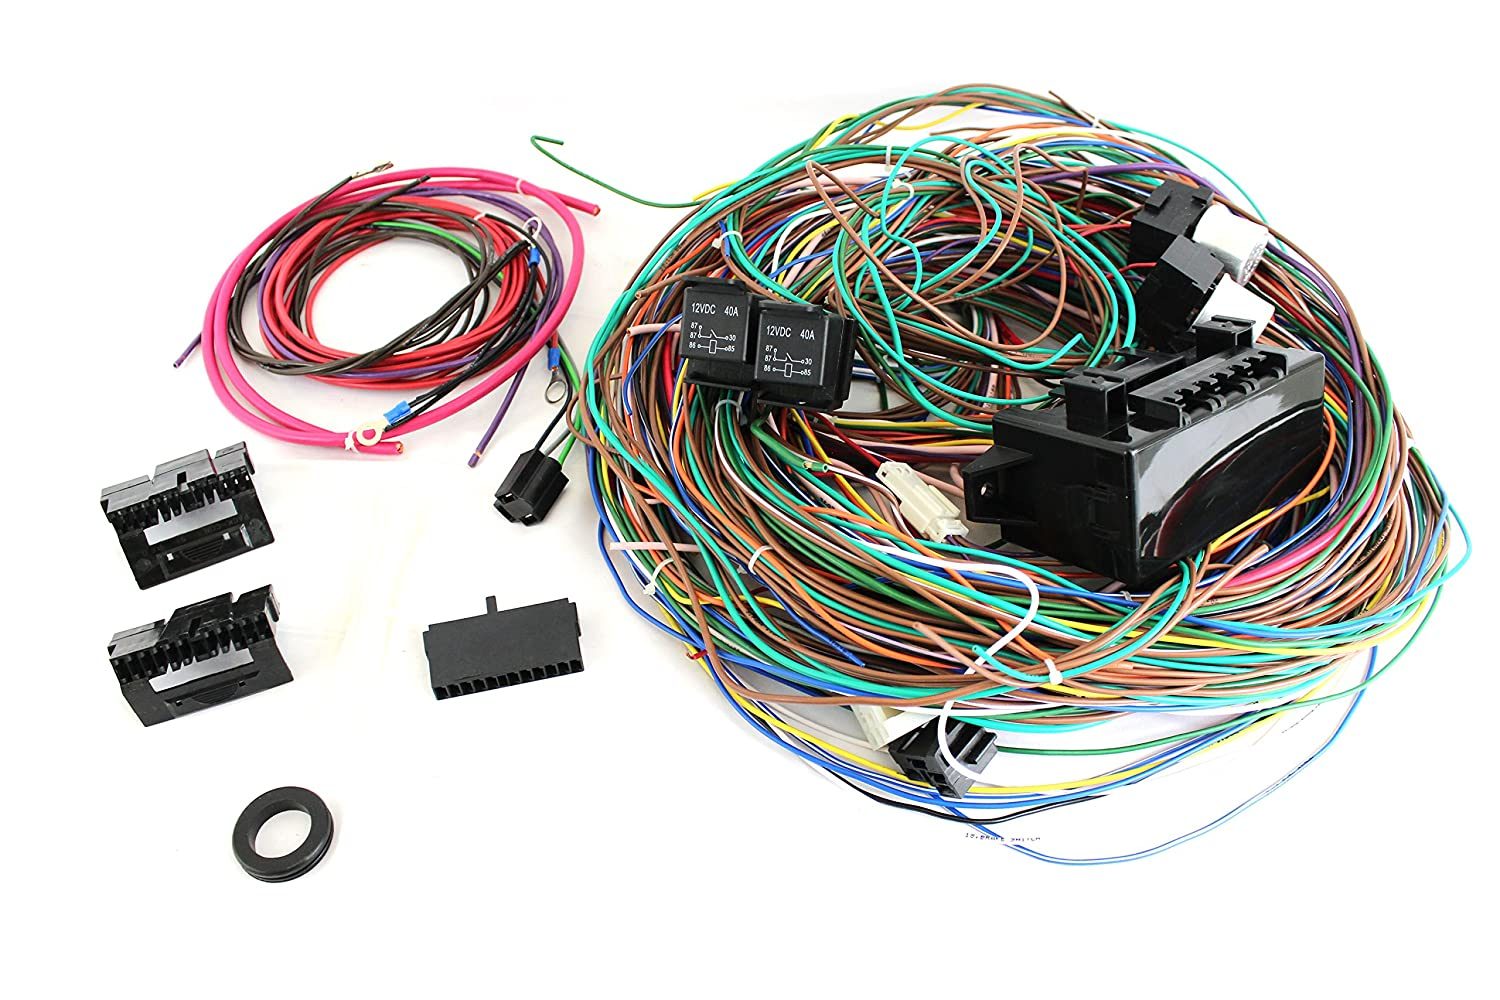 91YoamXFx2L._SL1500_ amazon com 12v 24 circuit 15 fuse street hot rat rod wiring hot rod wiring harness kits at mifinder.co